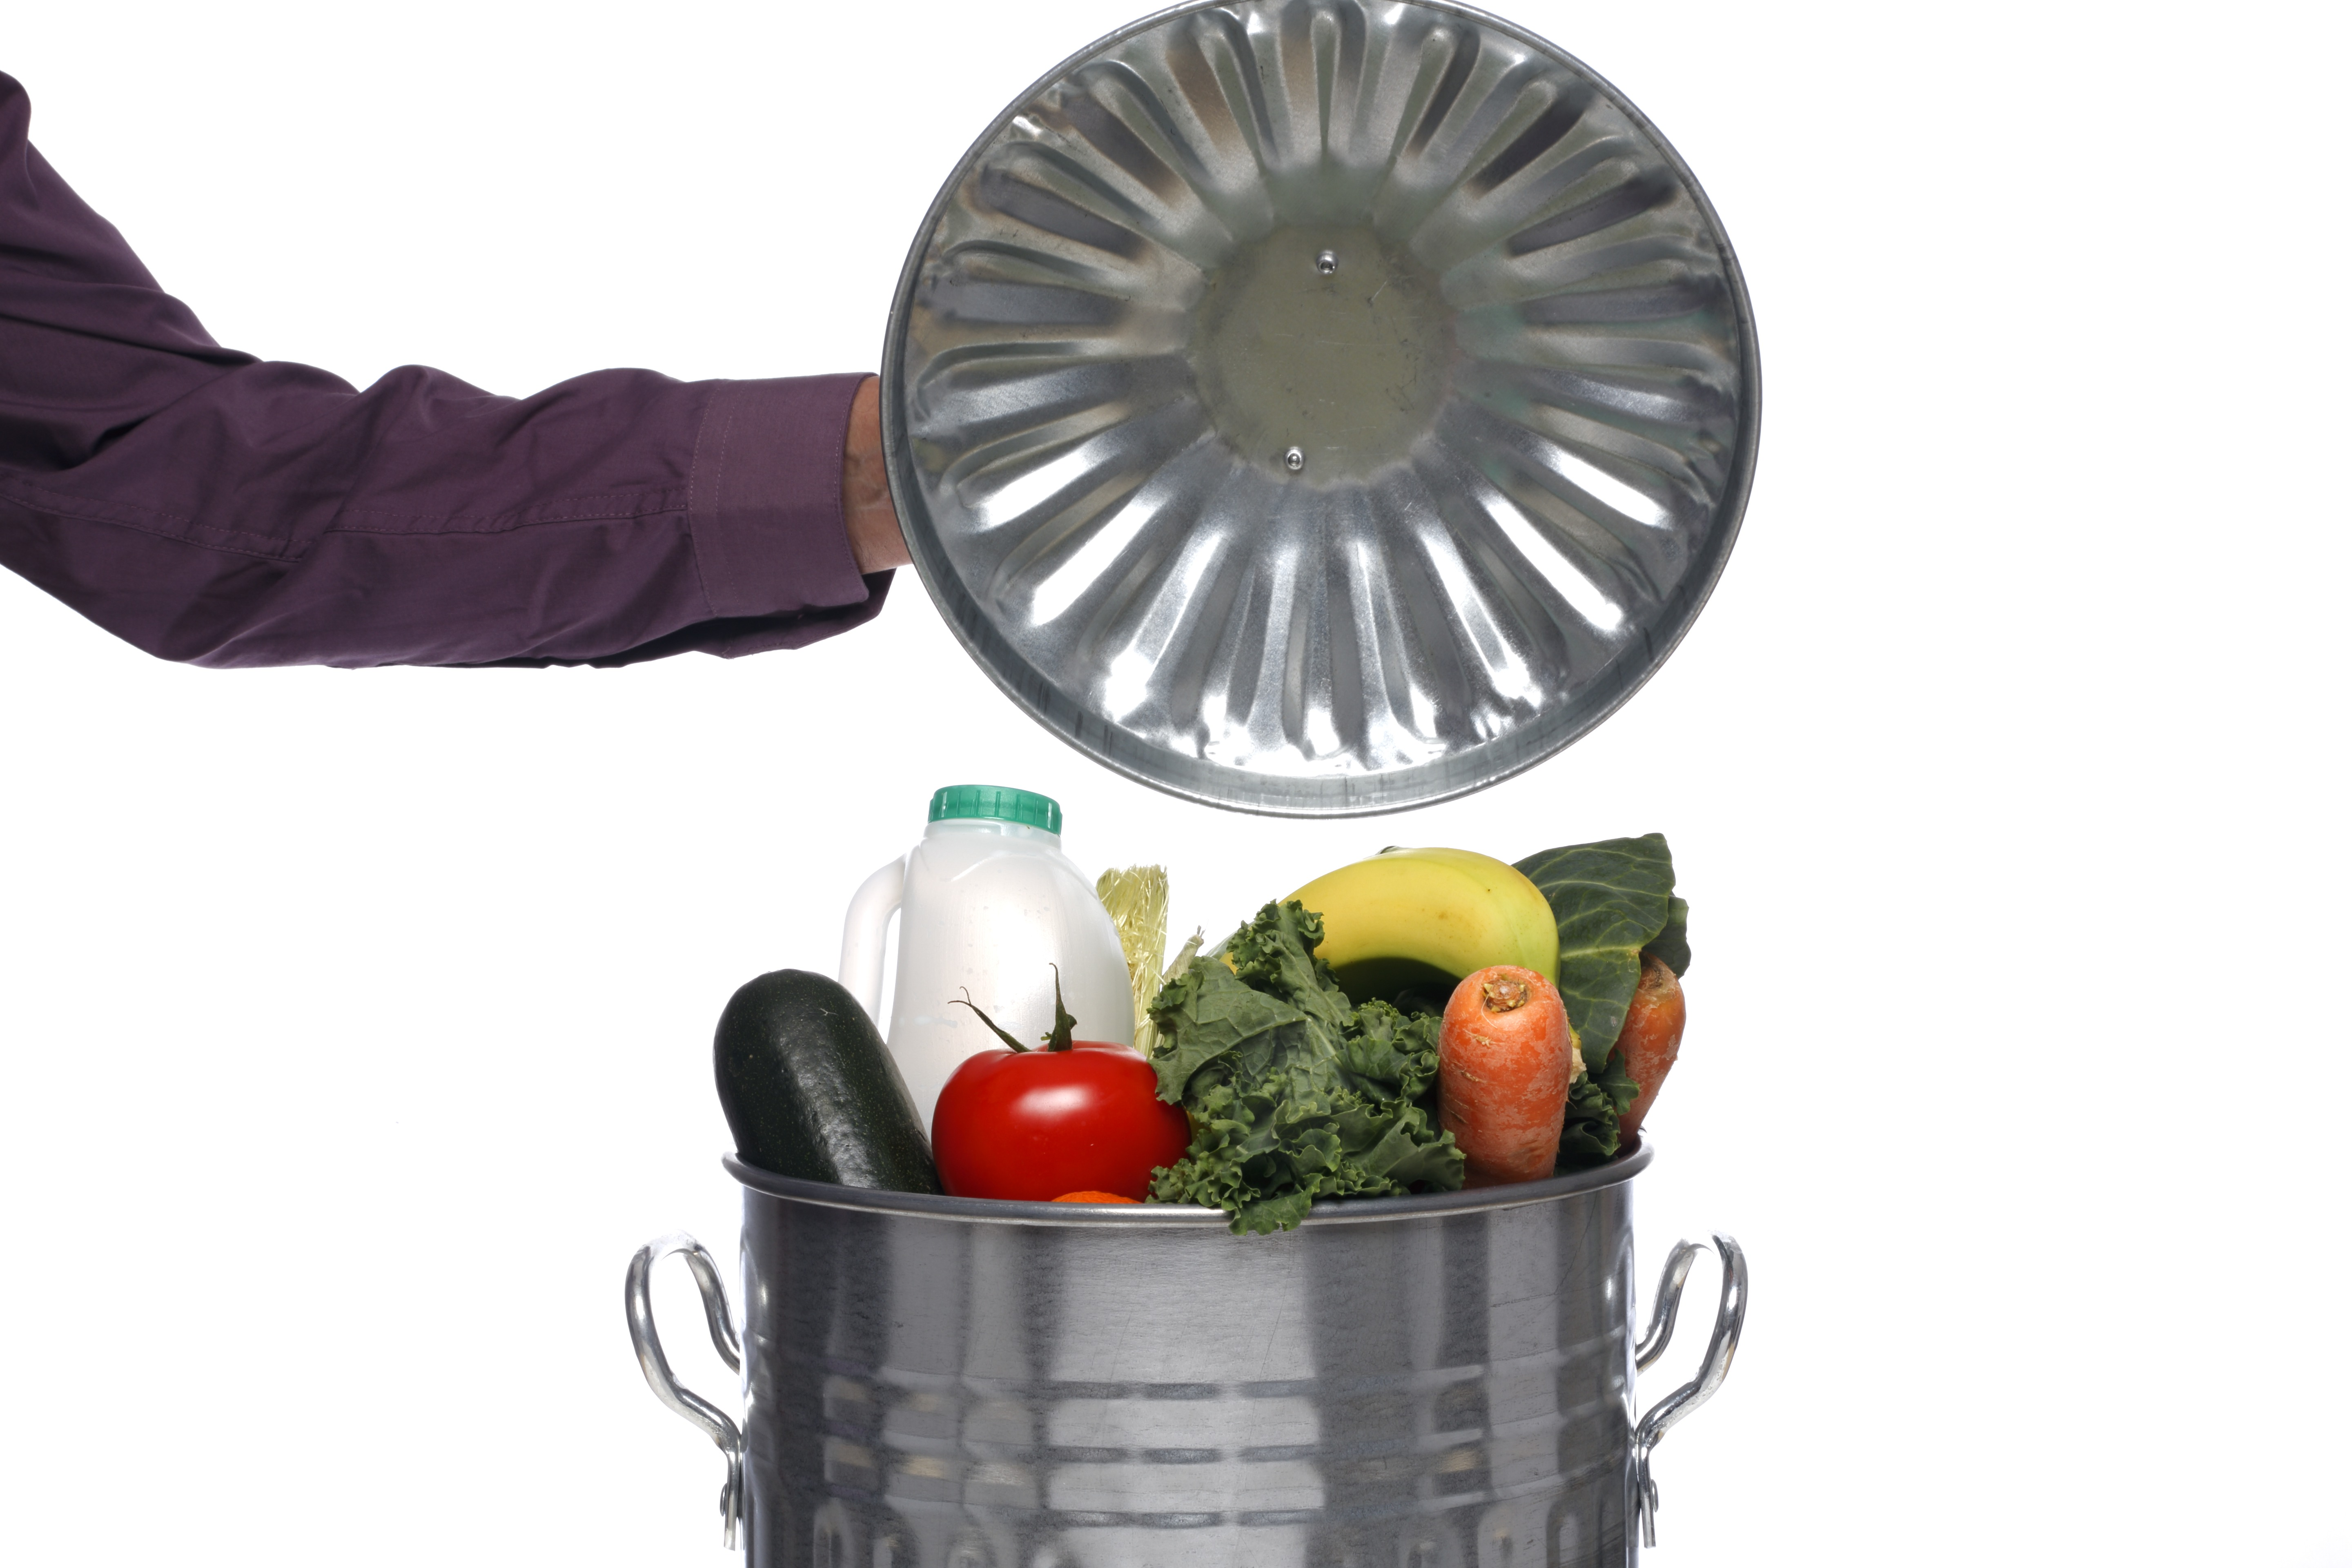 A trash can lid is held open to reveal fresh fruits and vegetables and a container of milk sitting in the trash can.